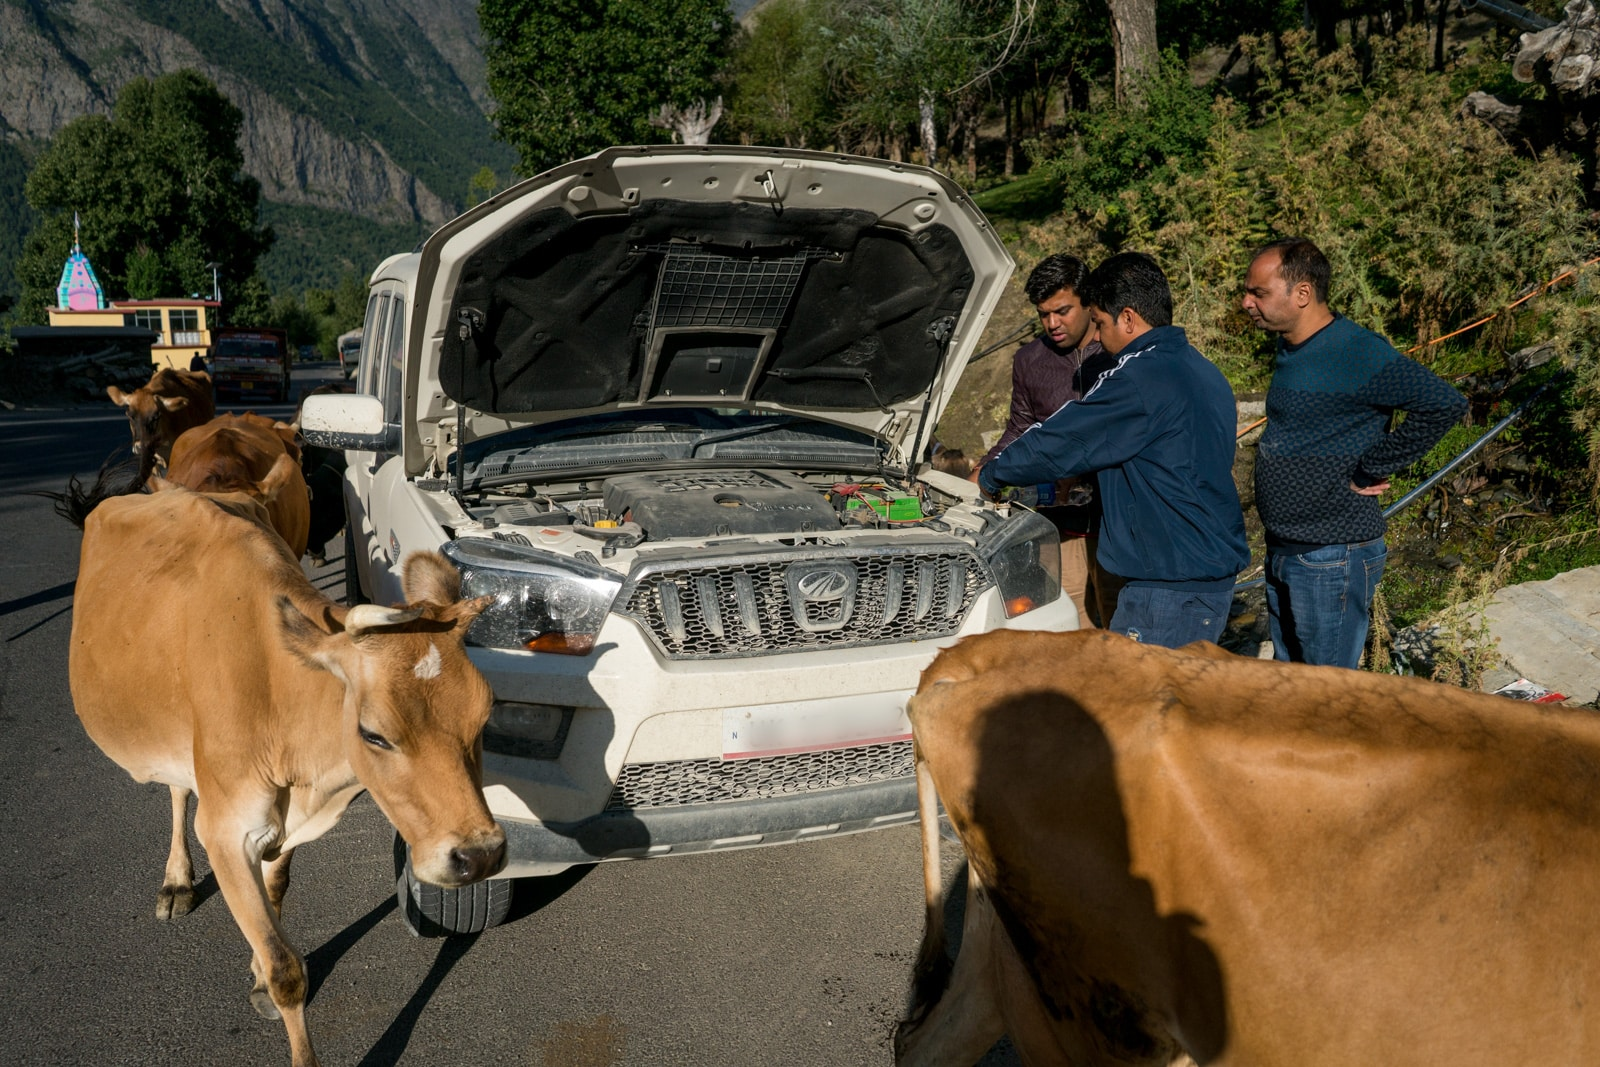 Hitchhiking the Leh - Manali highway - Cows and car troubles - Lost With Purpose travel blog